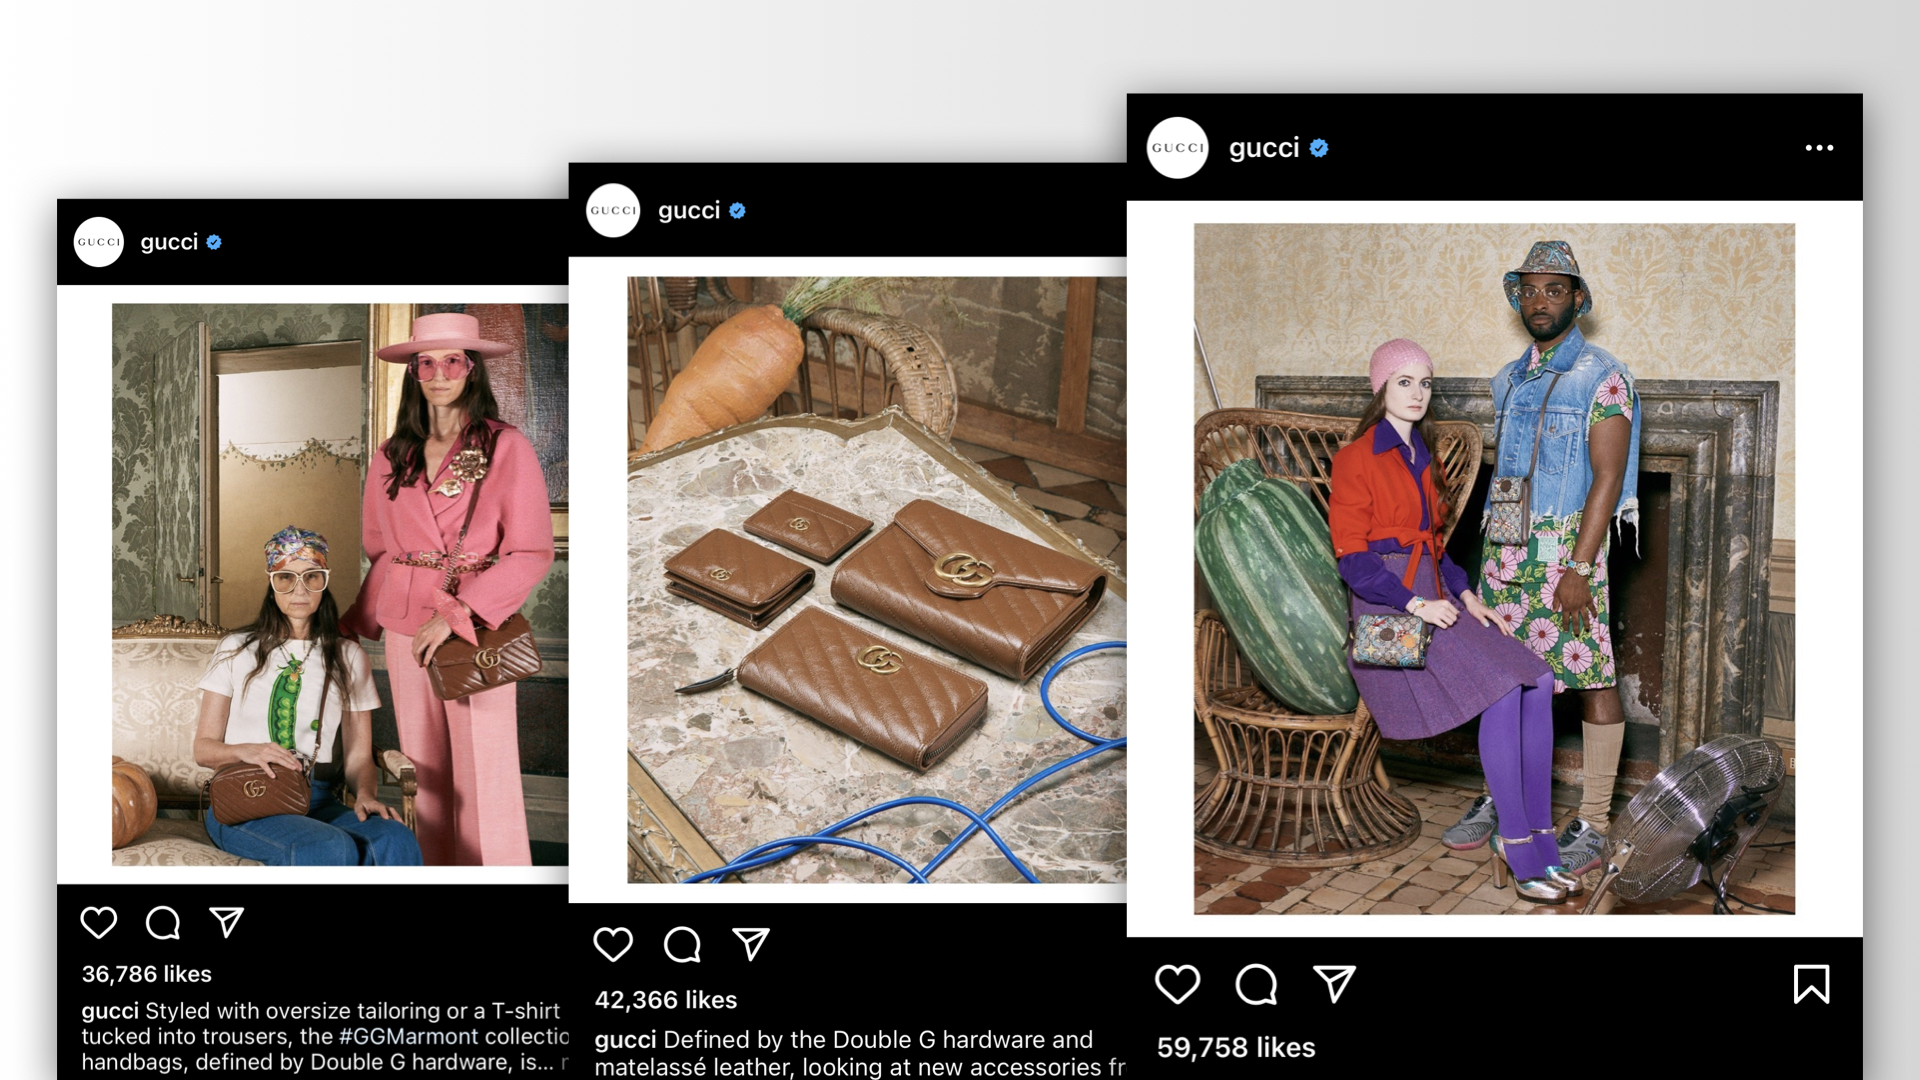 G & Co. is a luxury digital agency: Gucci is one luxury brand whose social media savviness has garnered millions of avid followers